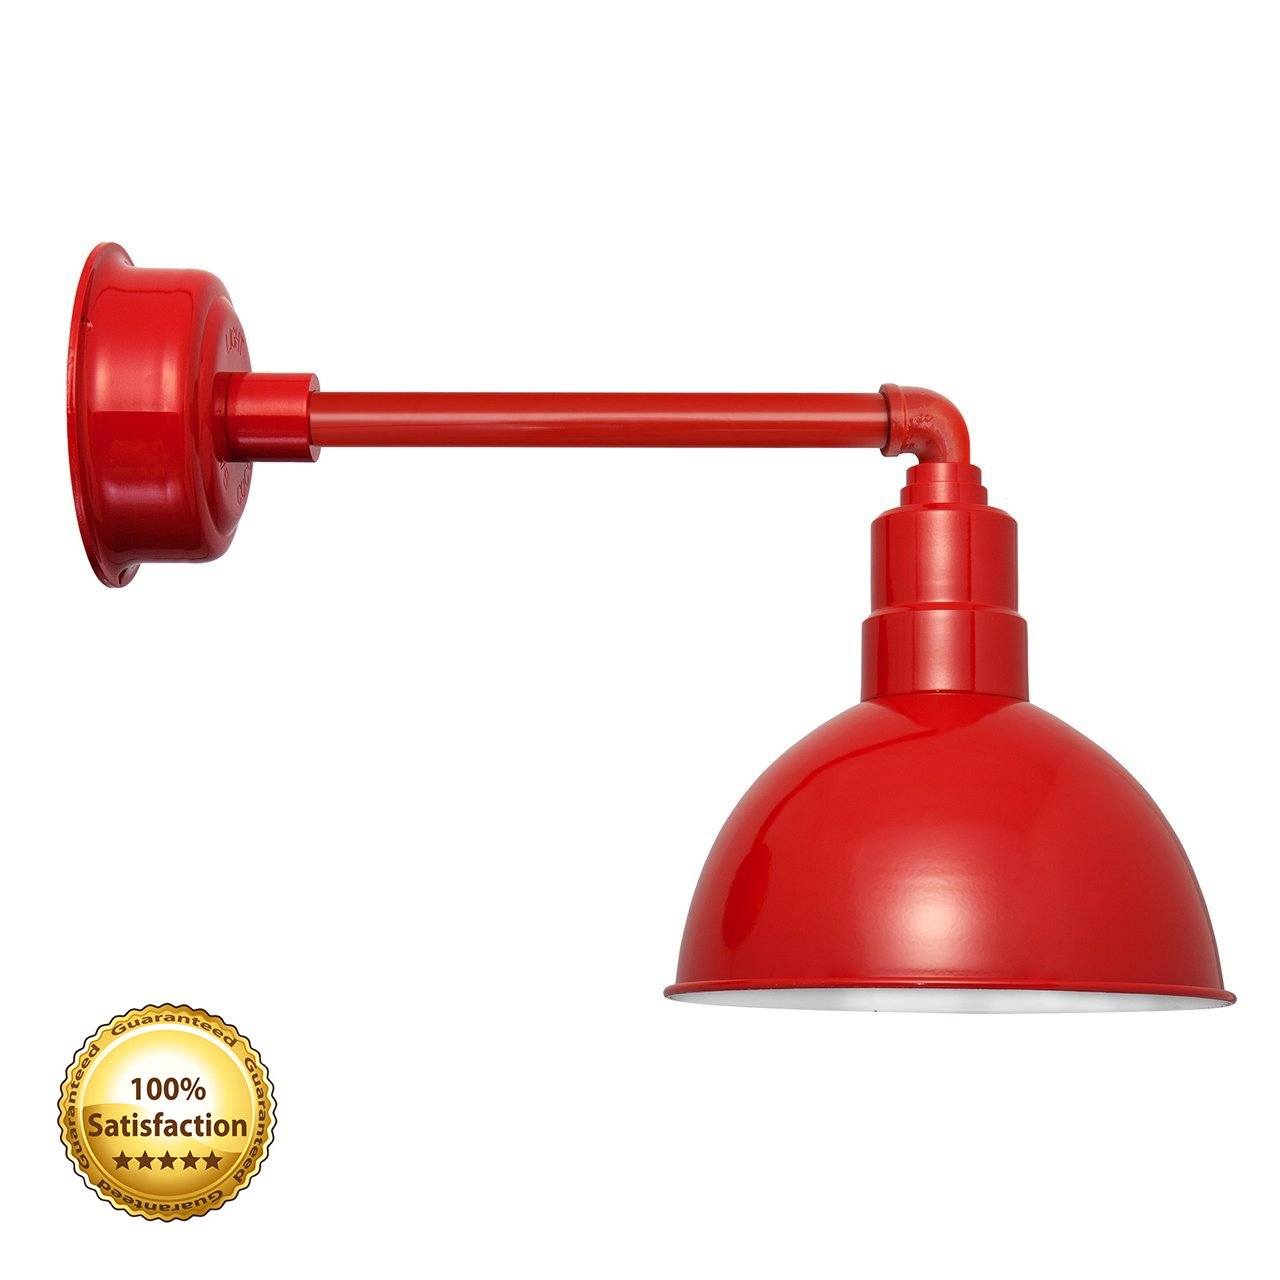 Cocoweb 8 inch Red Blackspot LED dimmable gooseneck barn light wall sconce fixture with metropolitan arm - BBSW8CR-1R by Cocoweb